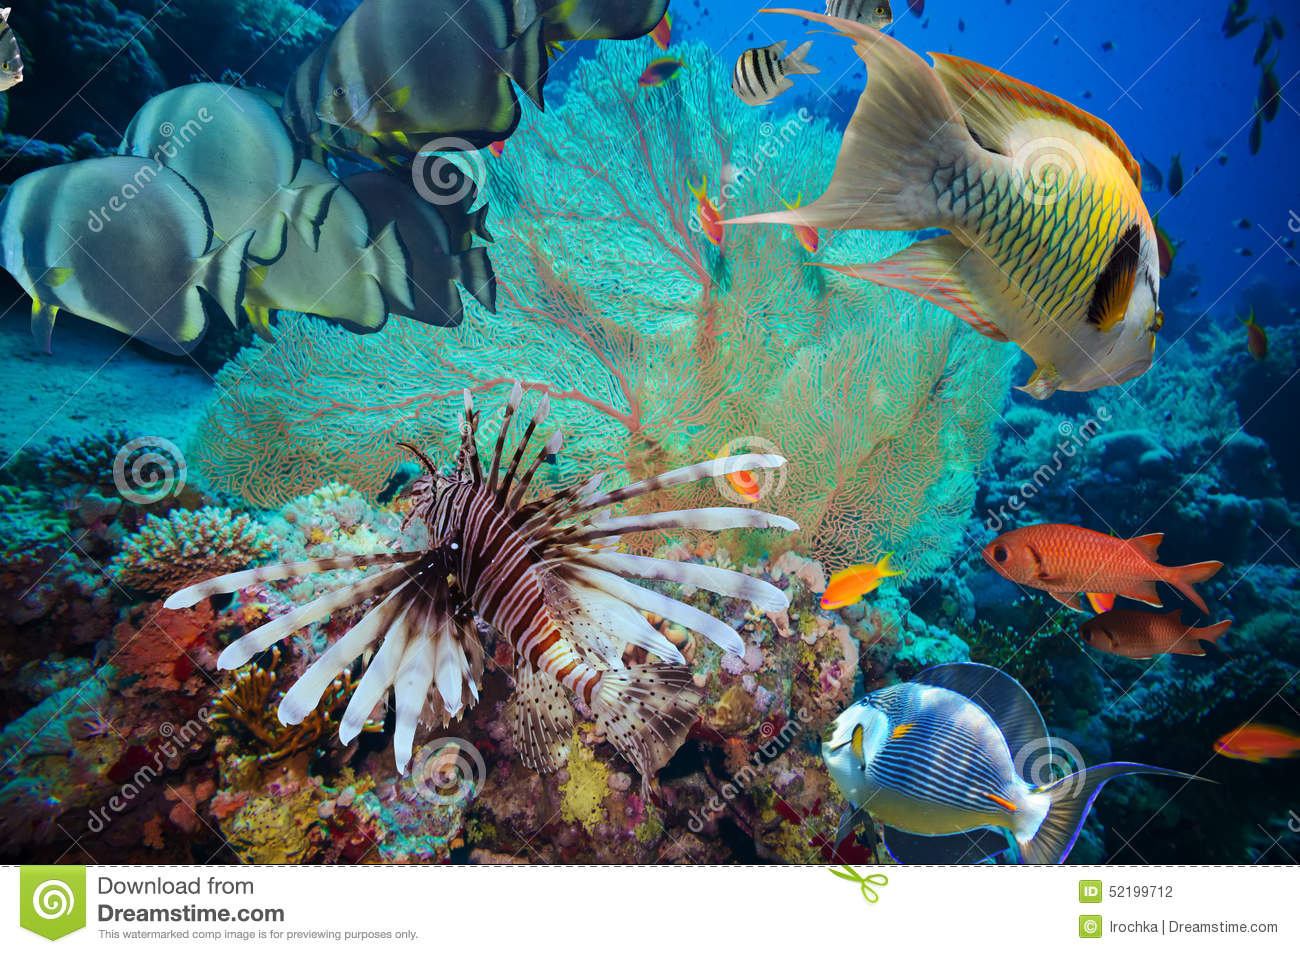 Colorful underwater reef with coral and sponges stock for Dream of fish swimming